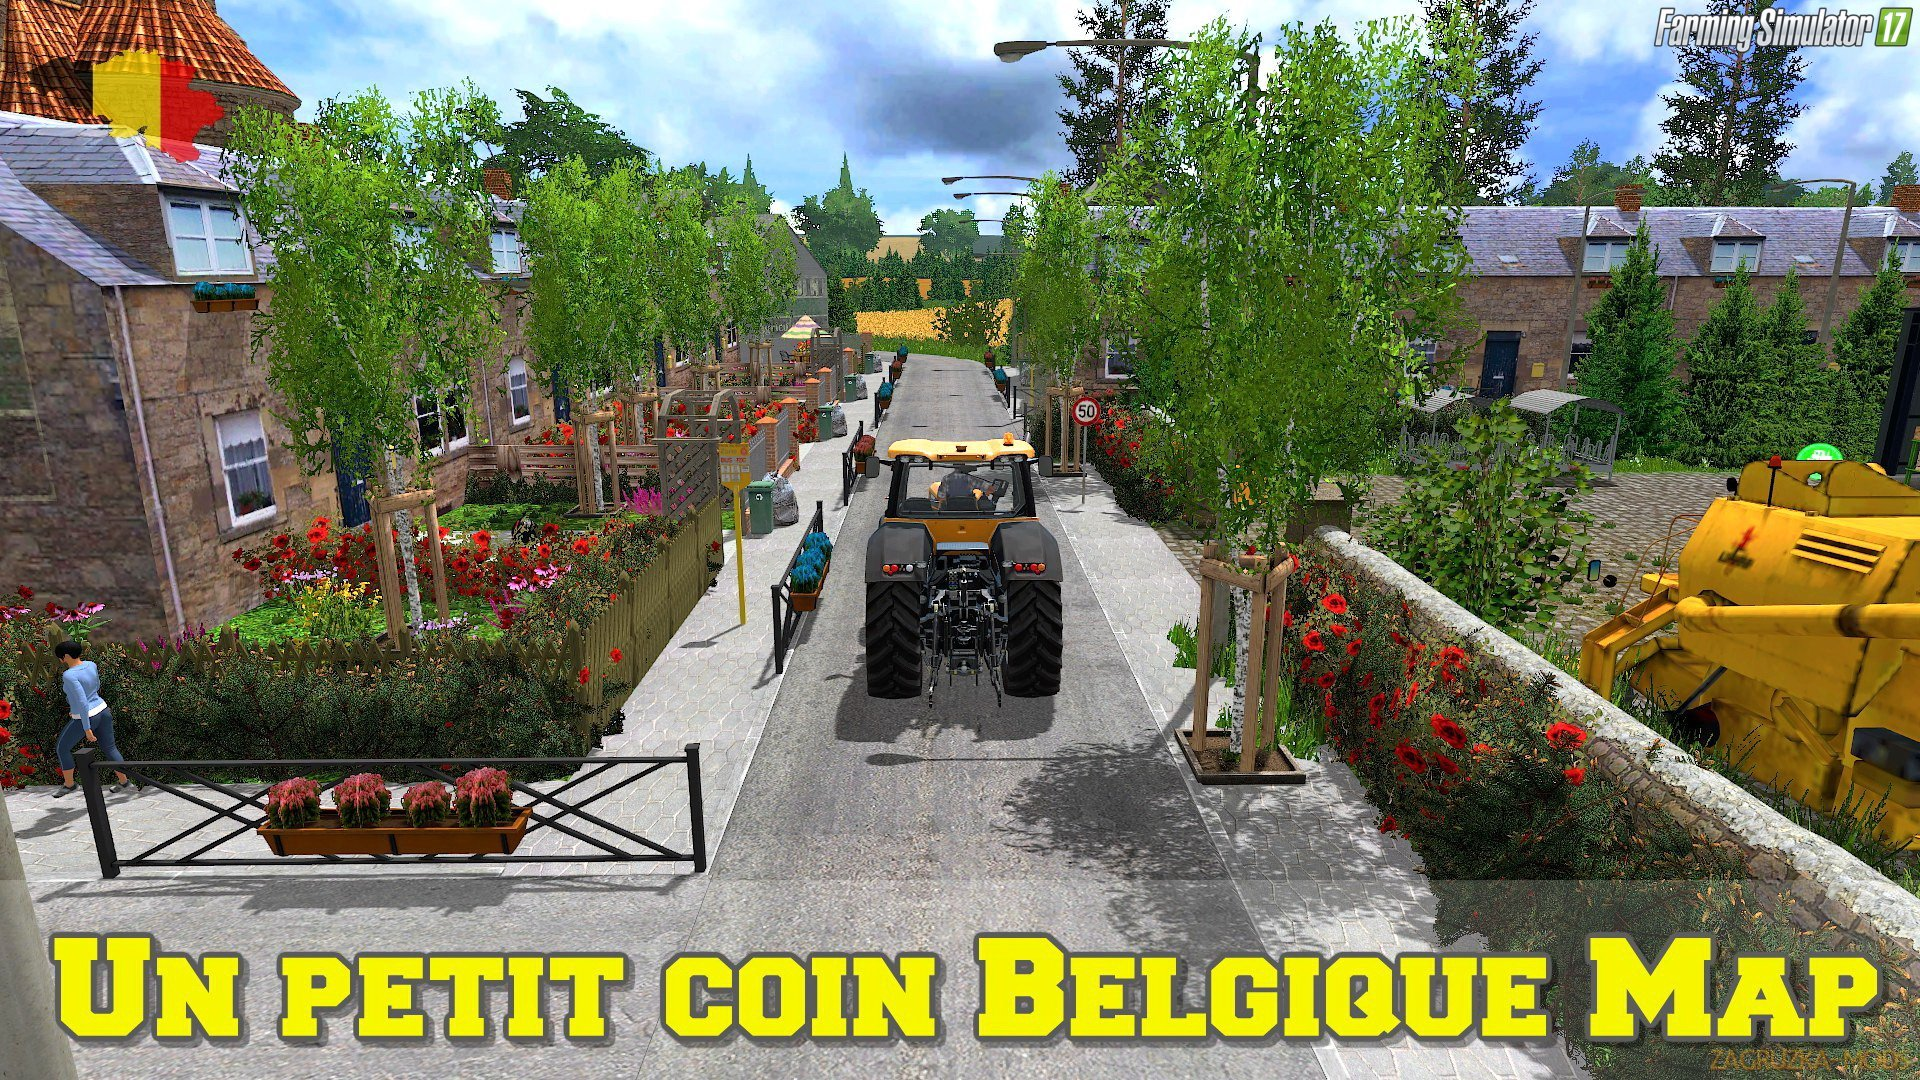 Un petit coin Belgique Map v1.0 by Nicolas Gaming for FS 17